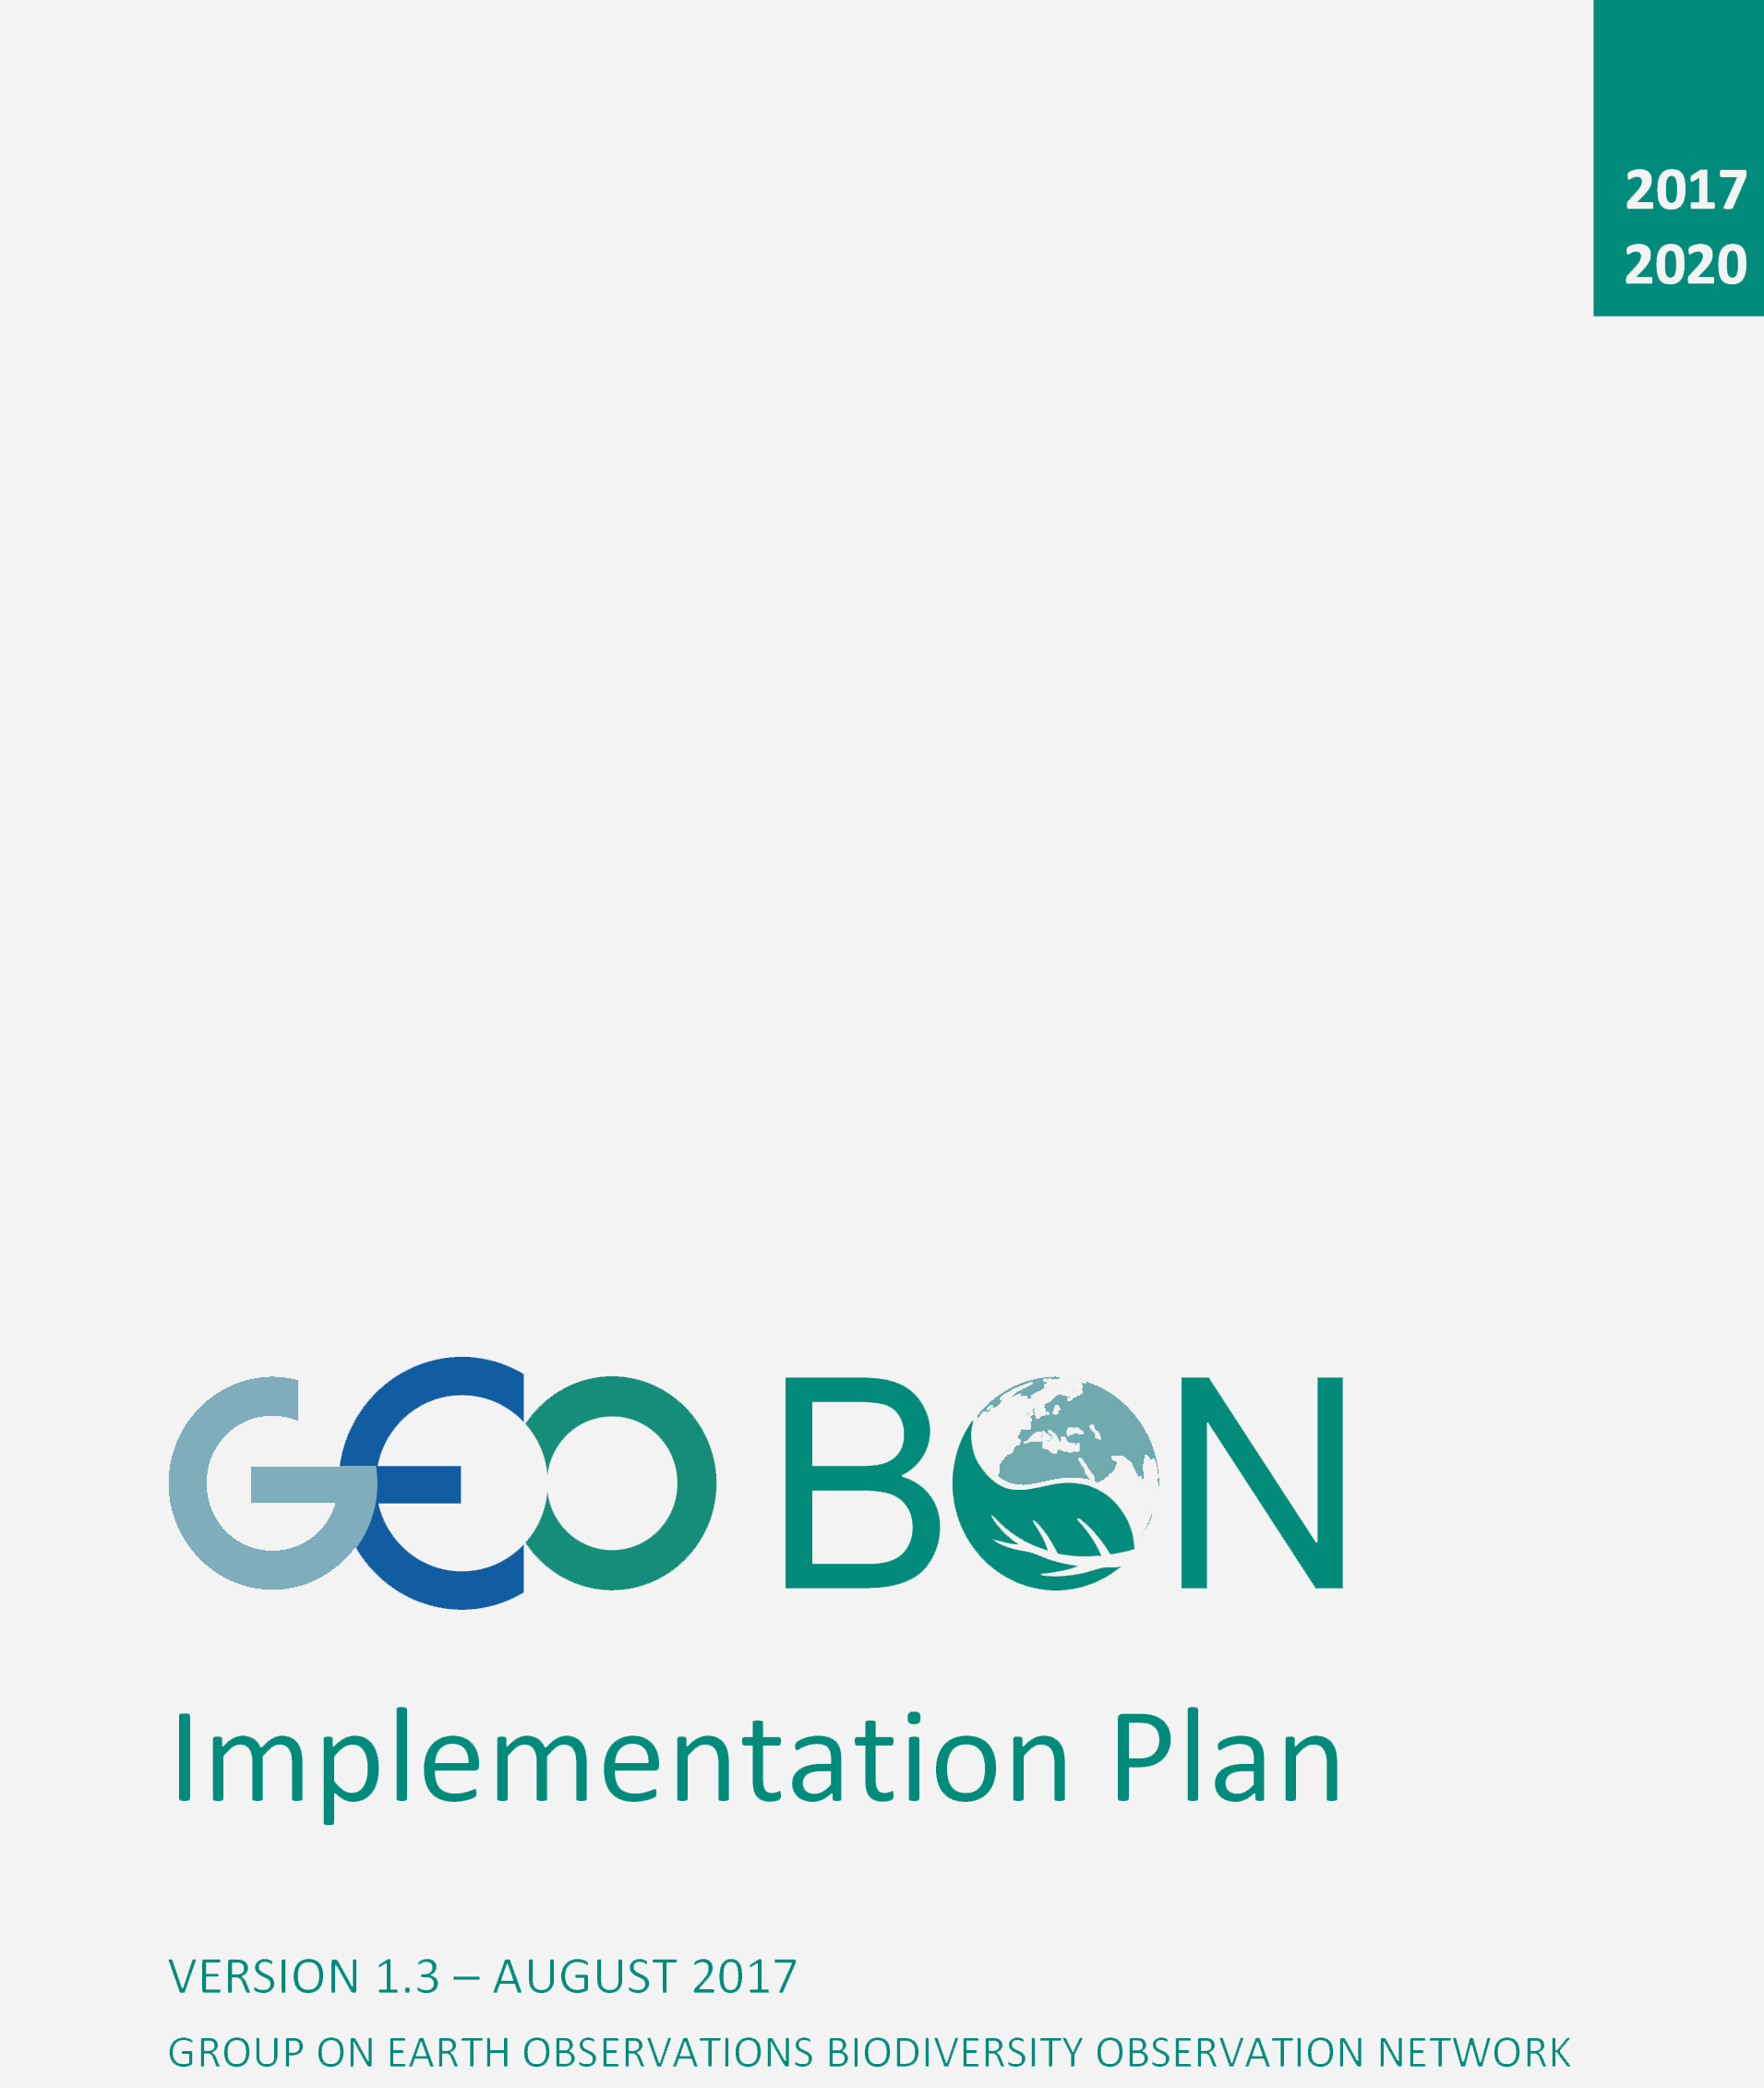 GEO BON Implementation plan